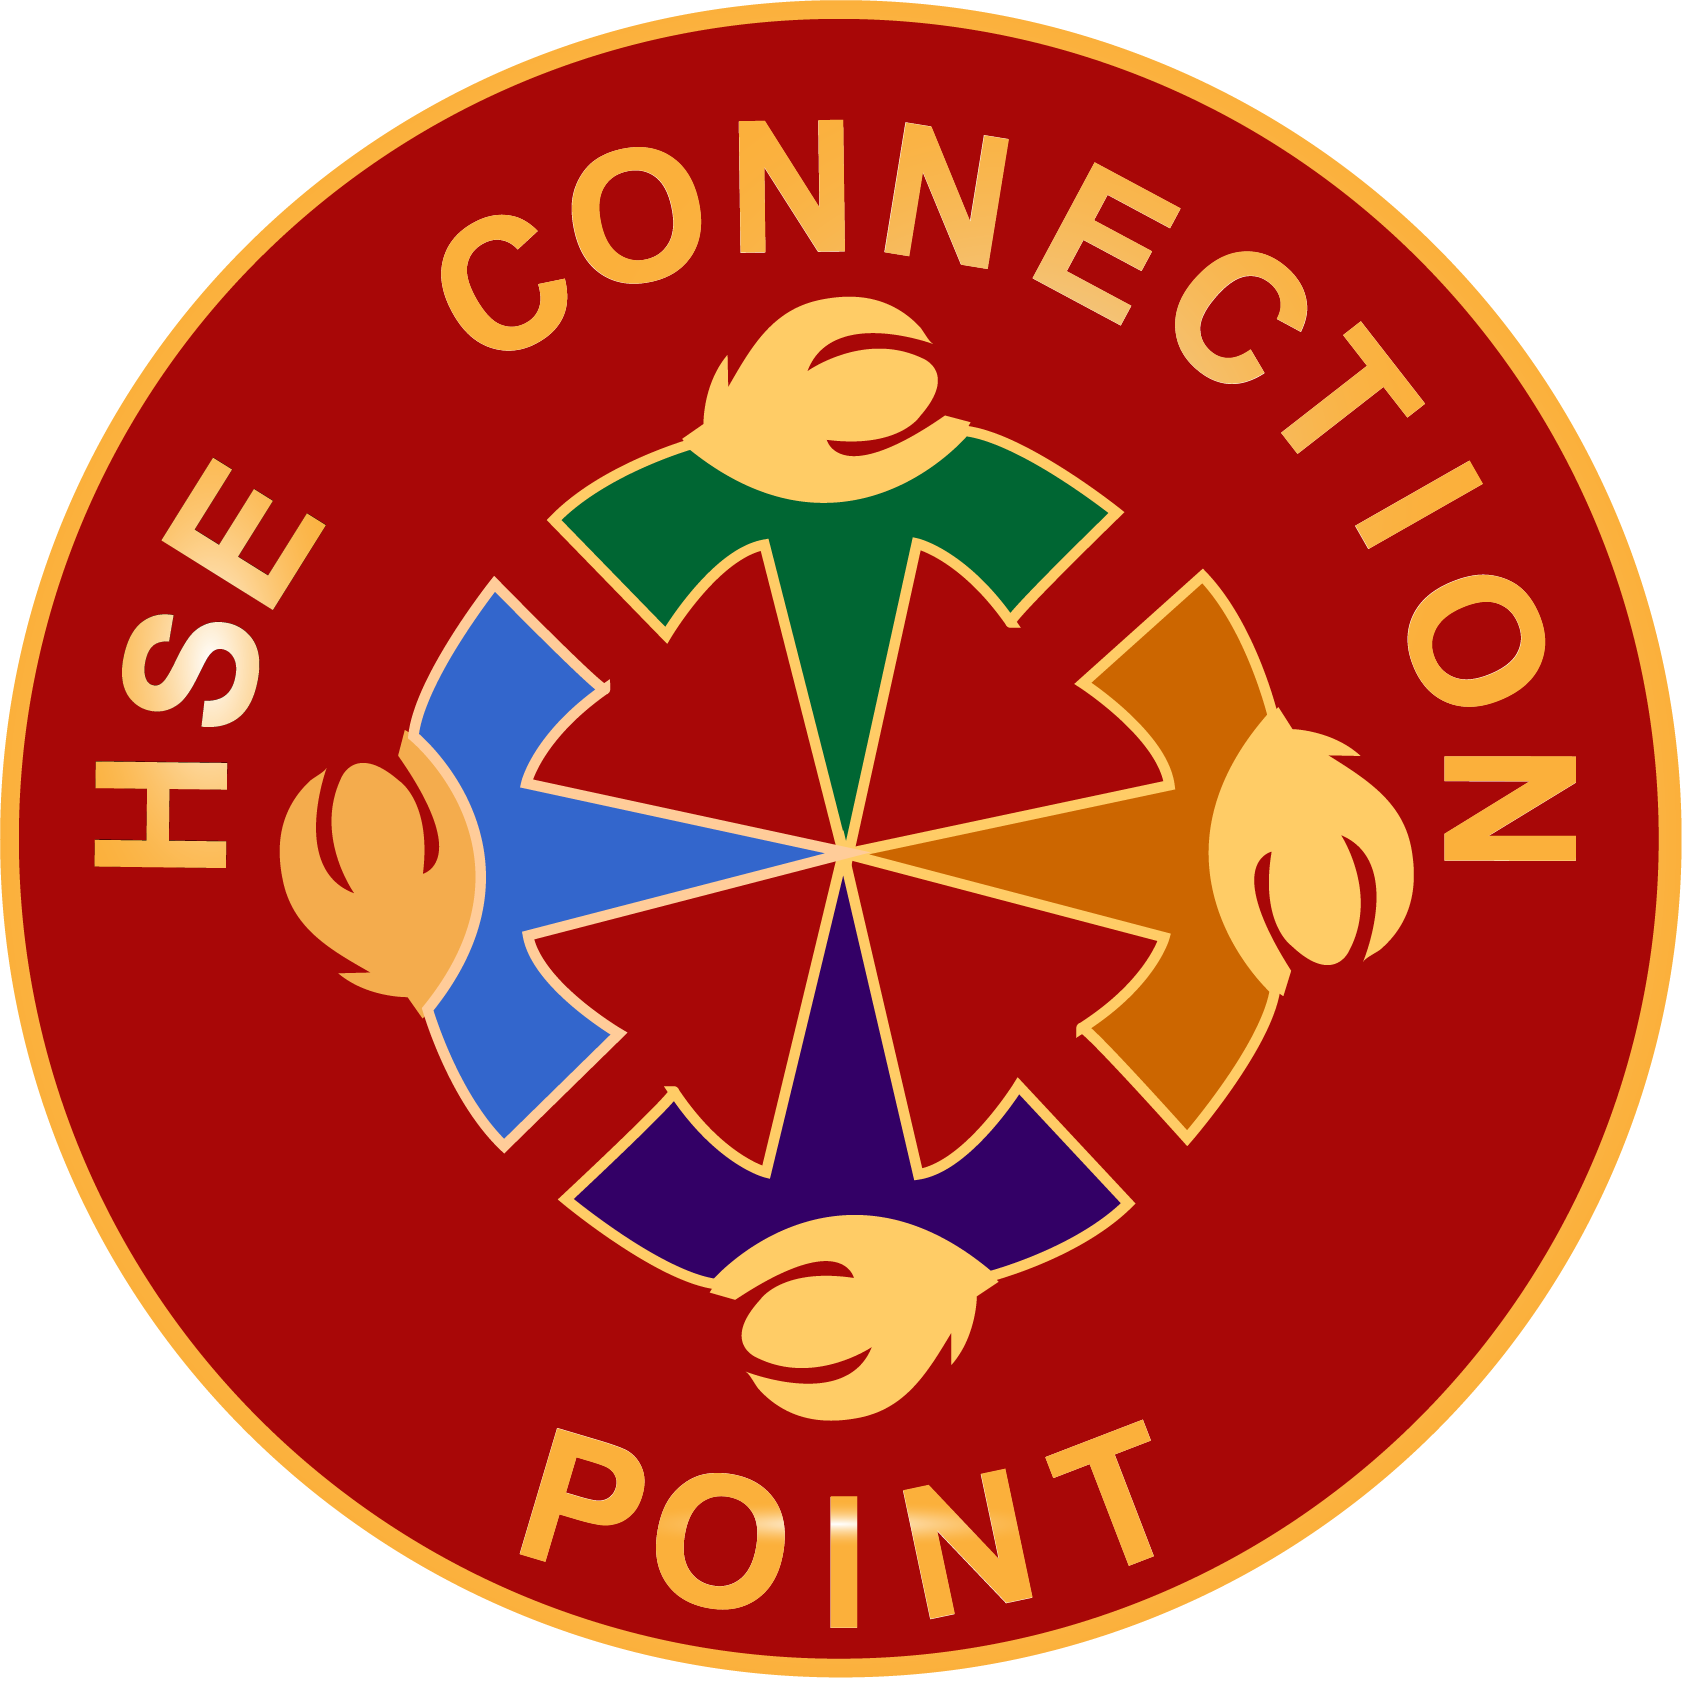 HSE Connection Point